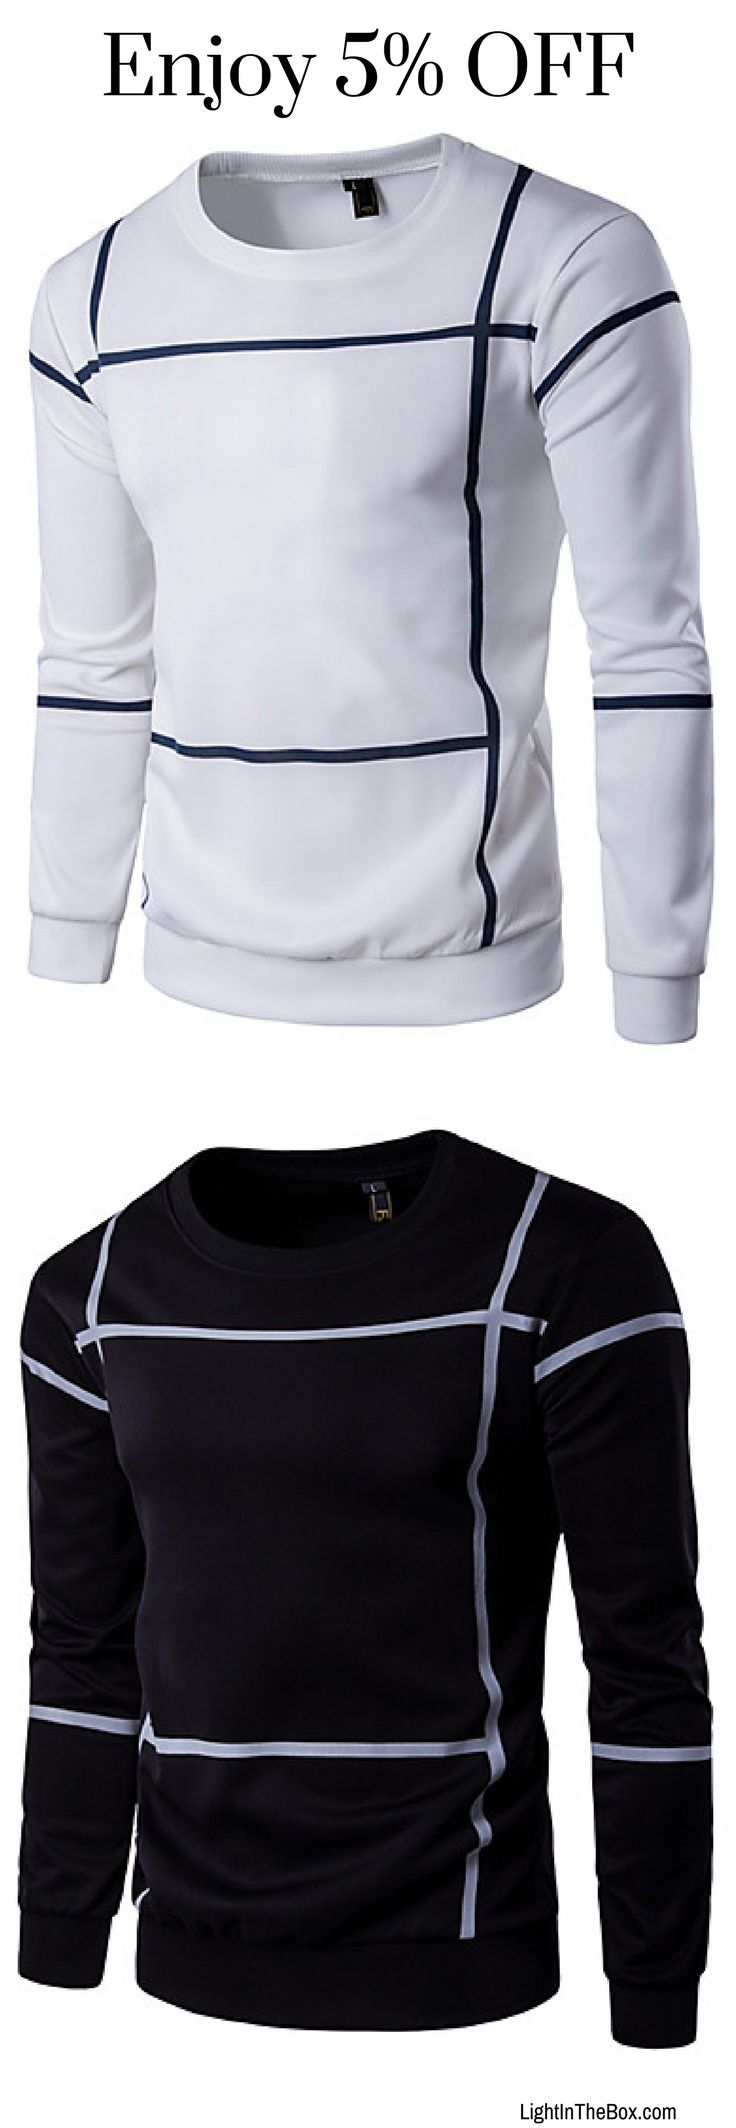 Men's casual solid quality thin striped long sleeve shirt in white, navy blue, dark grey colours at €13.51. Click to shop.